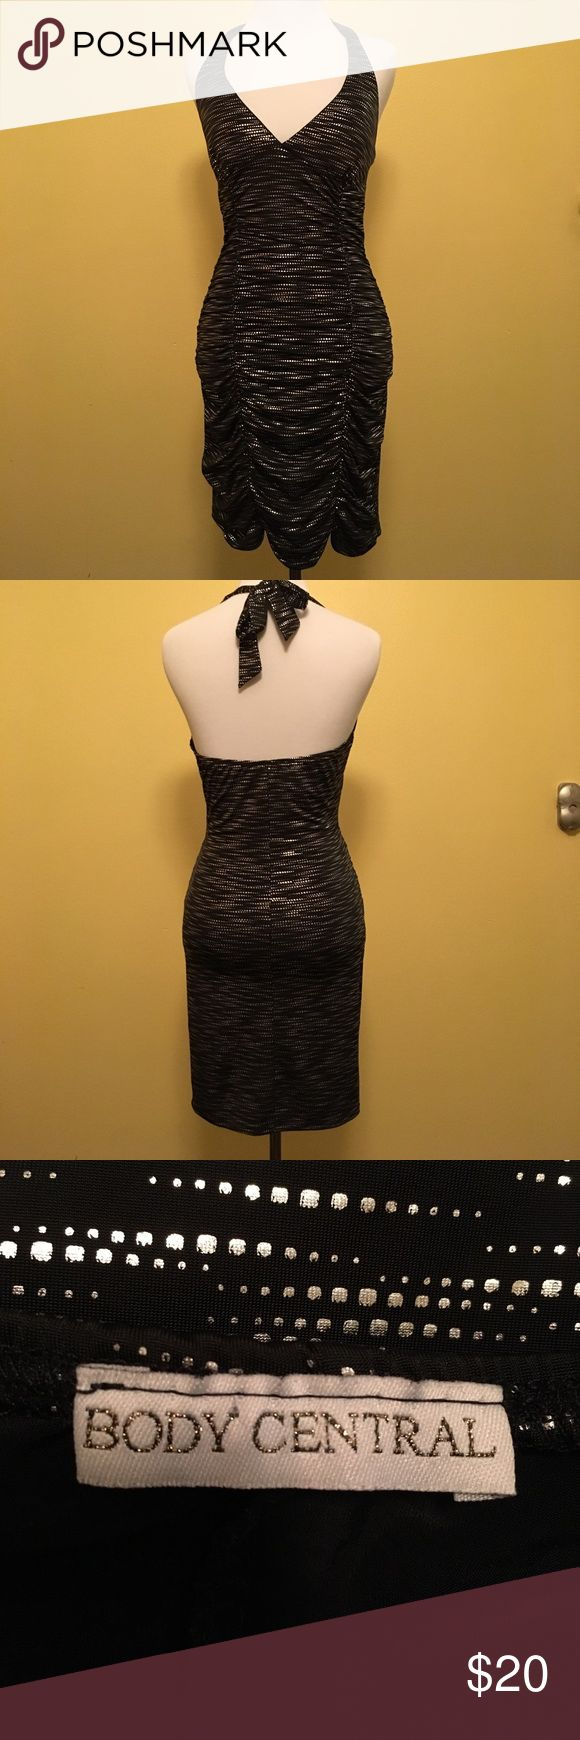 Body central black and silver dress Body central black and silver dress, very simple but dressy. cute scalloped bottom.  For a fun night on the town Body Central Dresses Mini